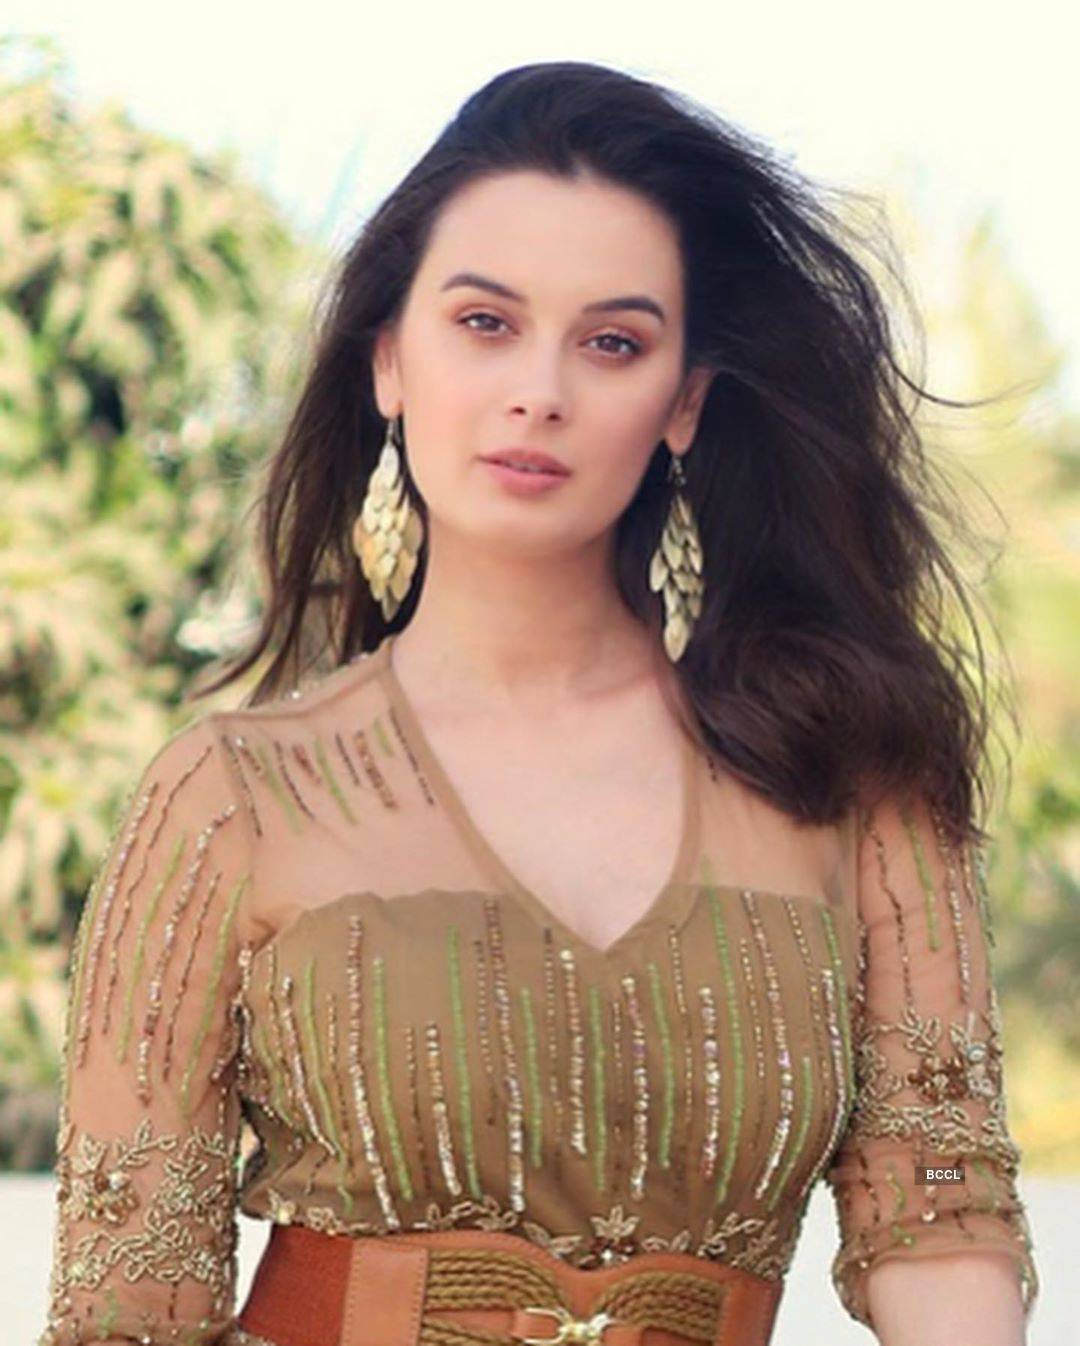 Beautiful pictures of Bollywood actress Evelyn Sharma